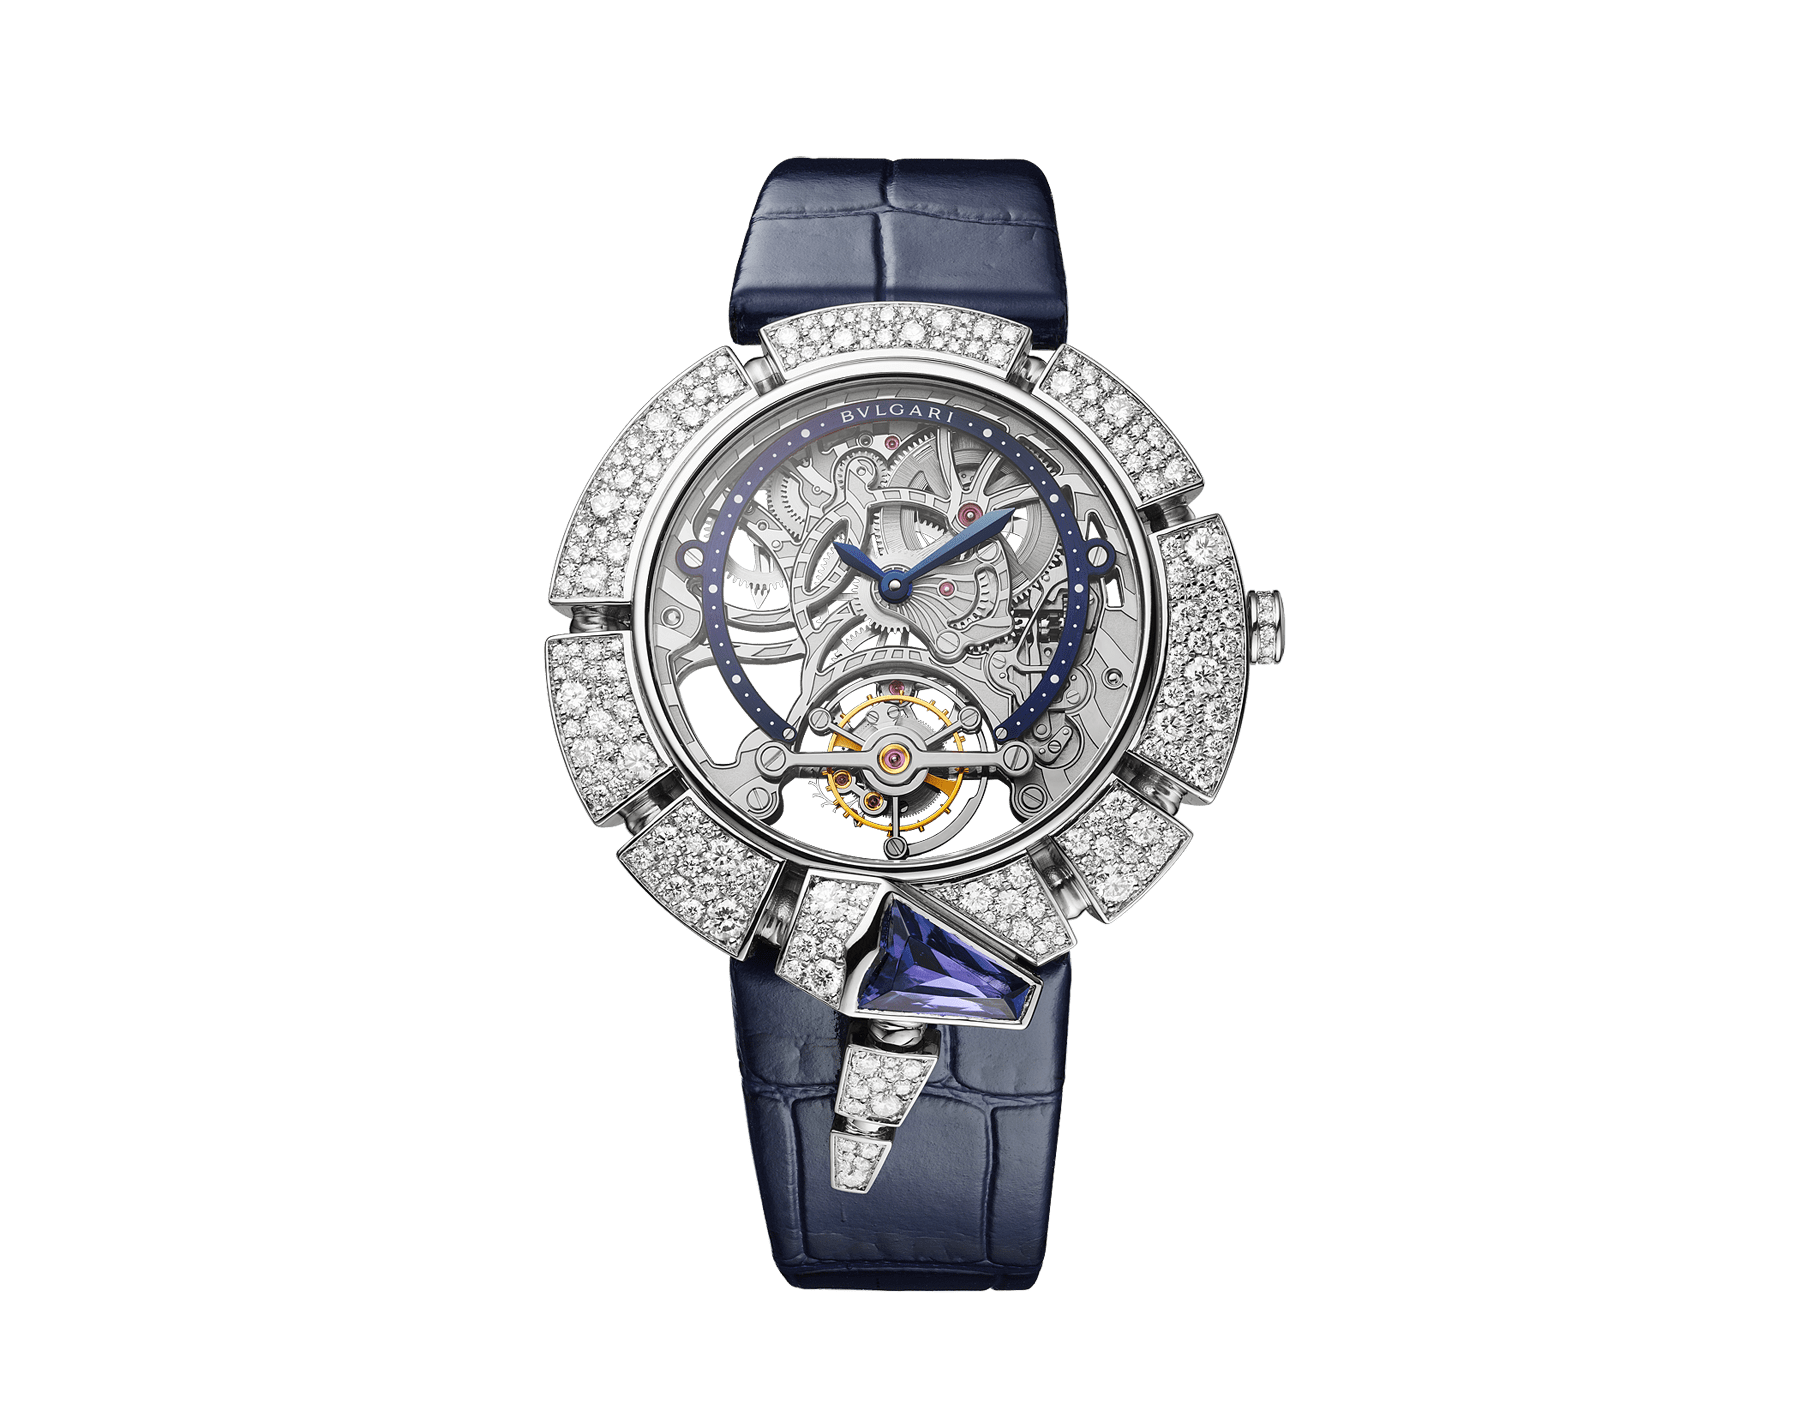 Serpenti Incantati Tourbillon watch with manufacture mechanical skeletonized movement, manual winding, 18 kt white gold case set with brilliant cut diamonds and a tanzanite, transparent dial and blue alligator bracelet. 102723 image 1